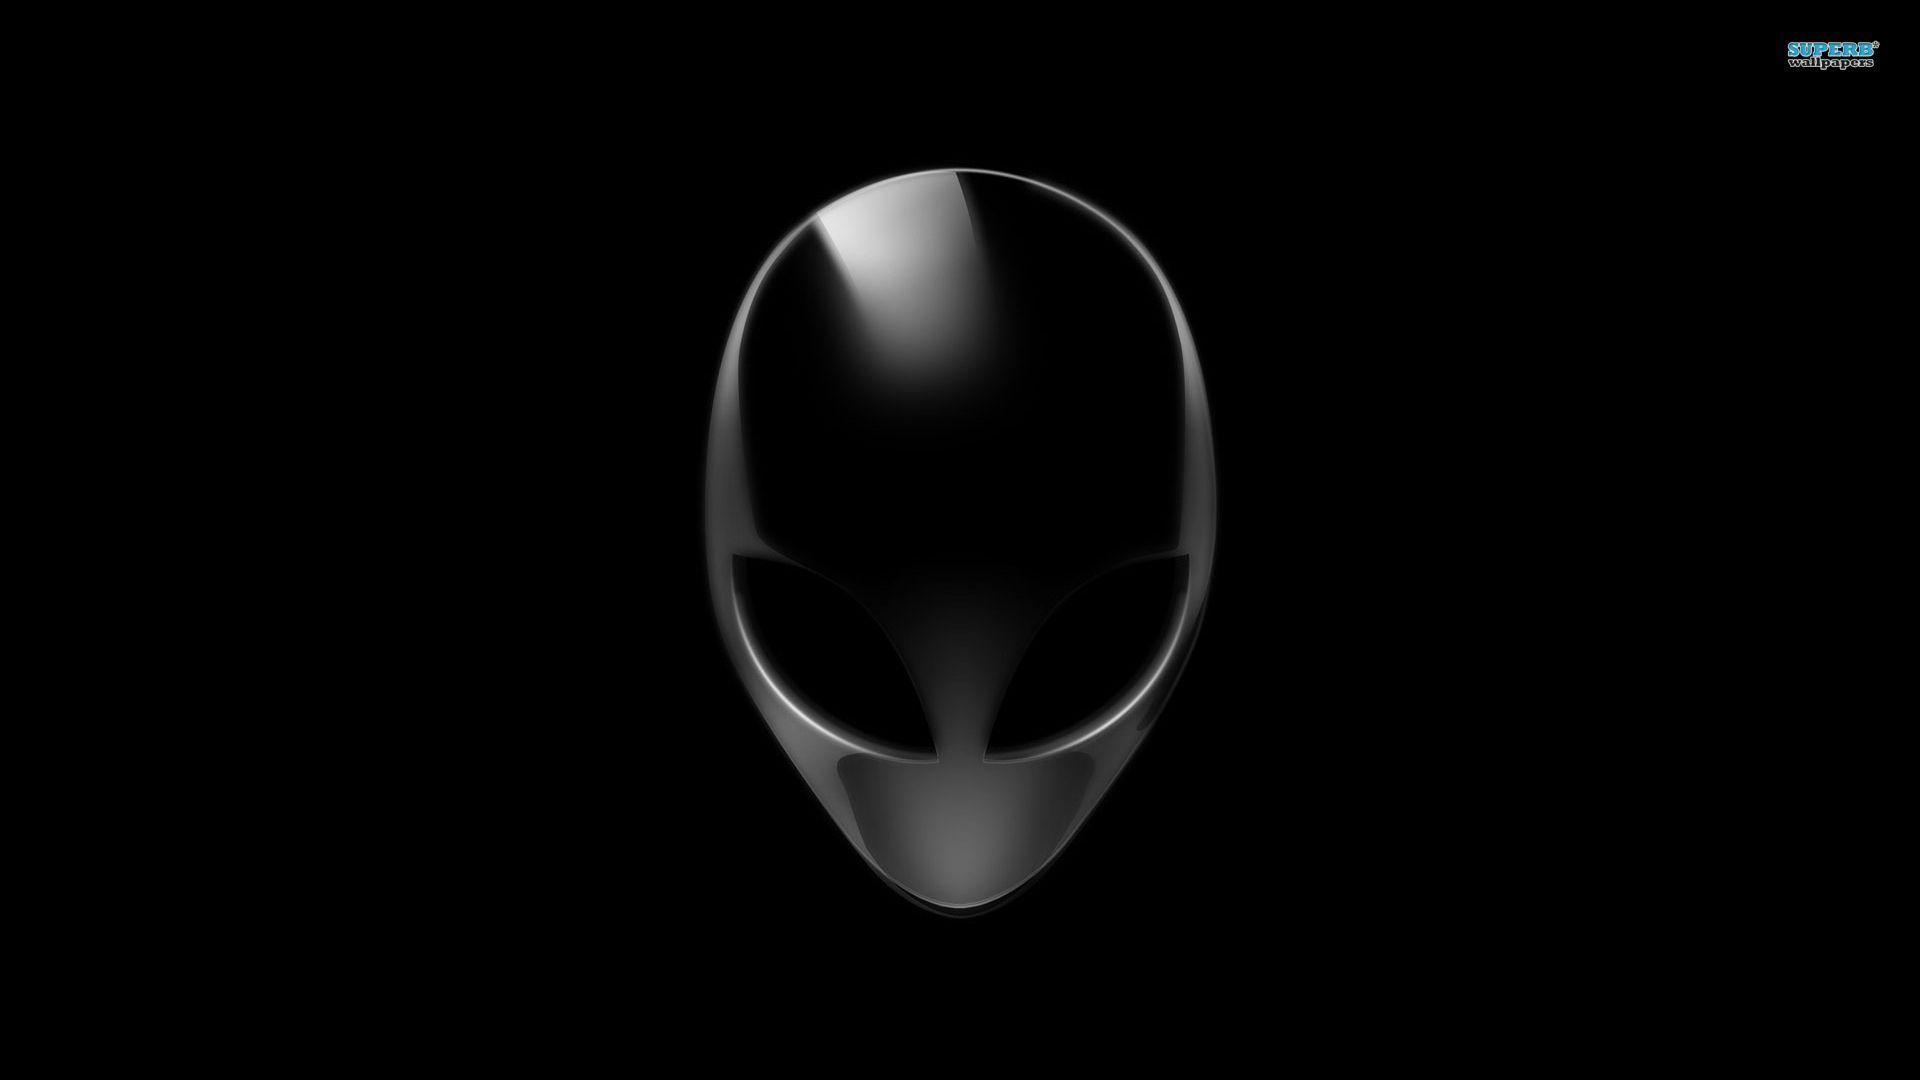 Alienware Wallpaper 1920X1080 - 1563463